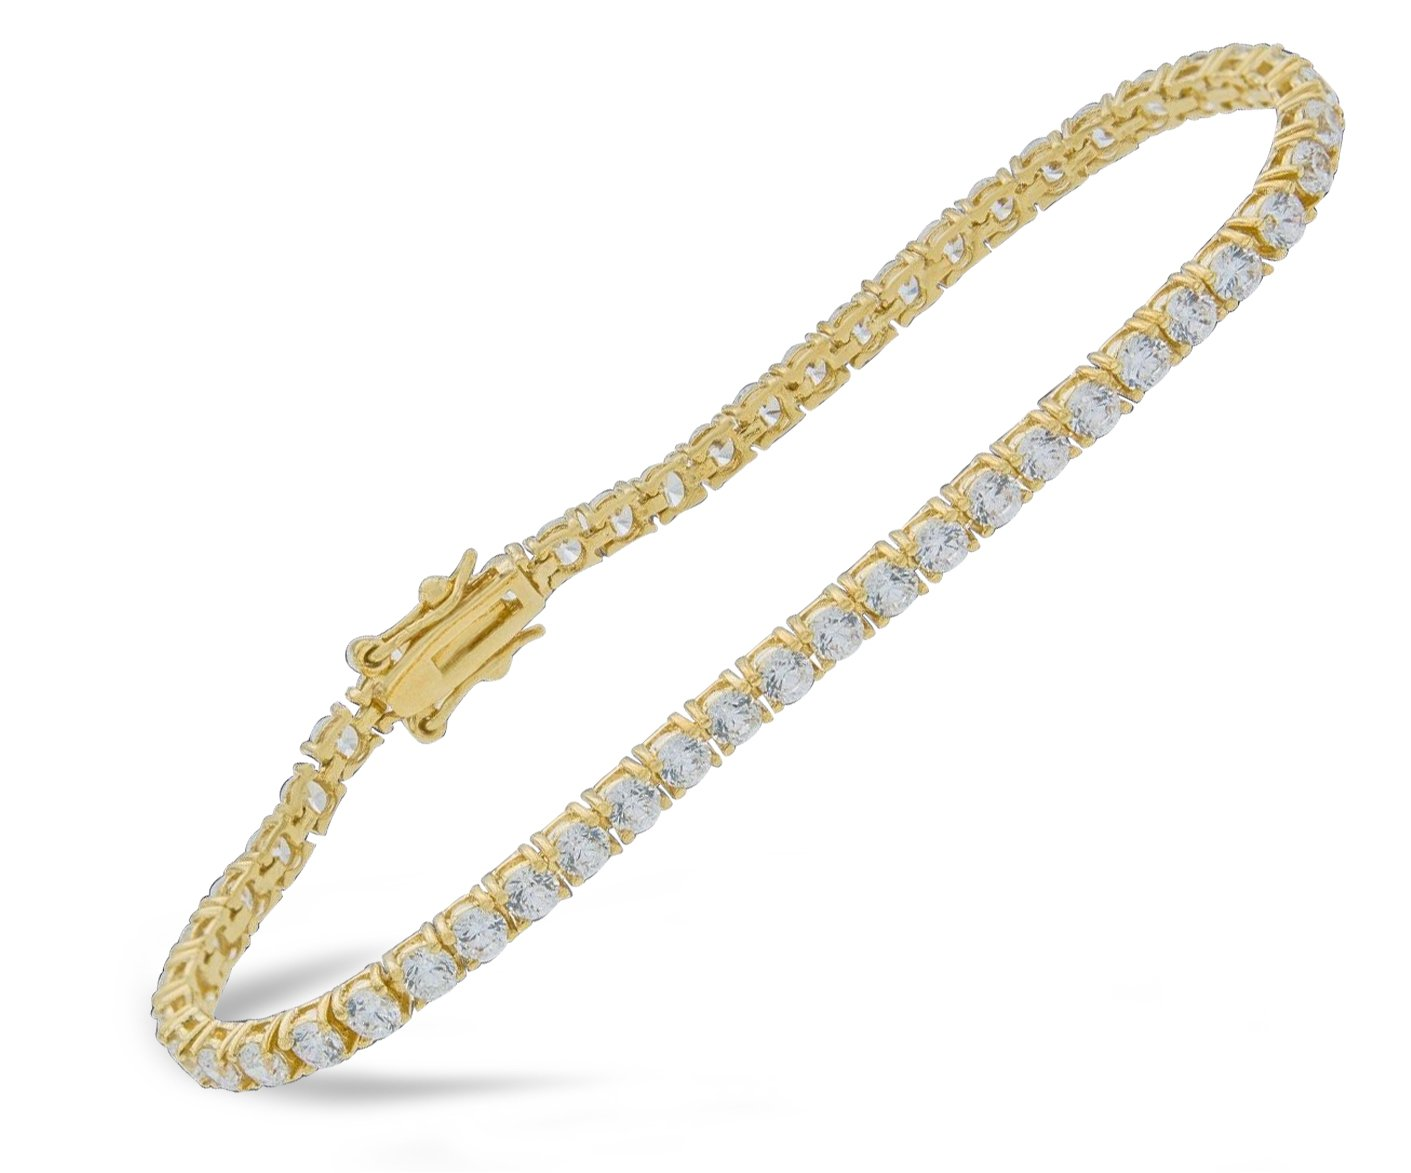 Women's14k Yellow Gold Finish 4.00 Ct Simulated Diamond Tennis Bracelet 5-10 Inches (8 Inches)